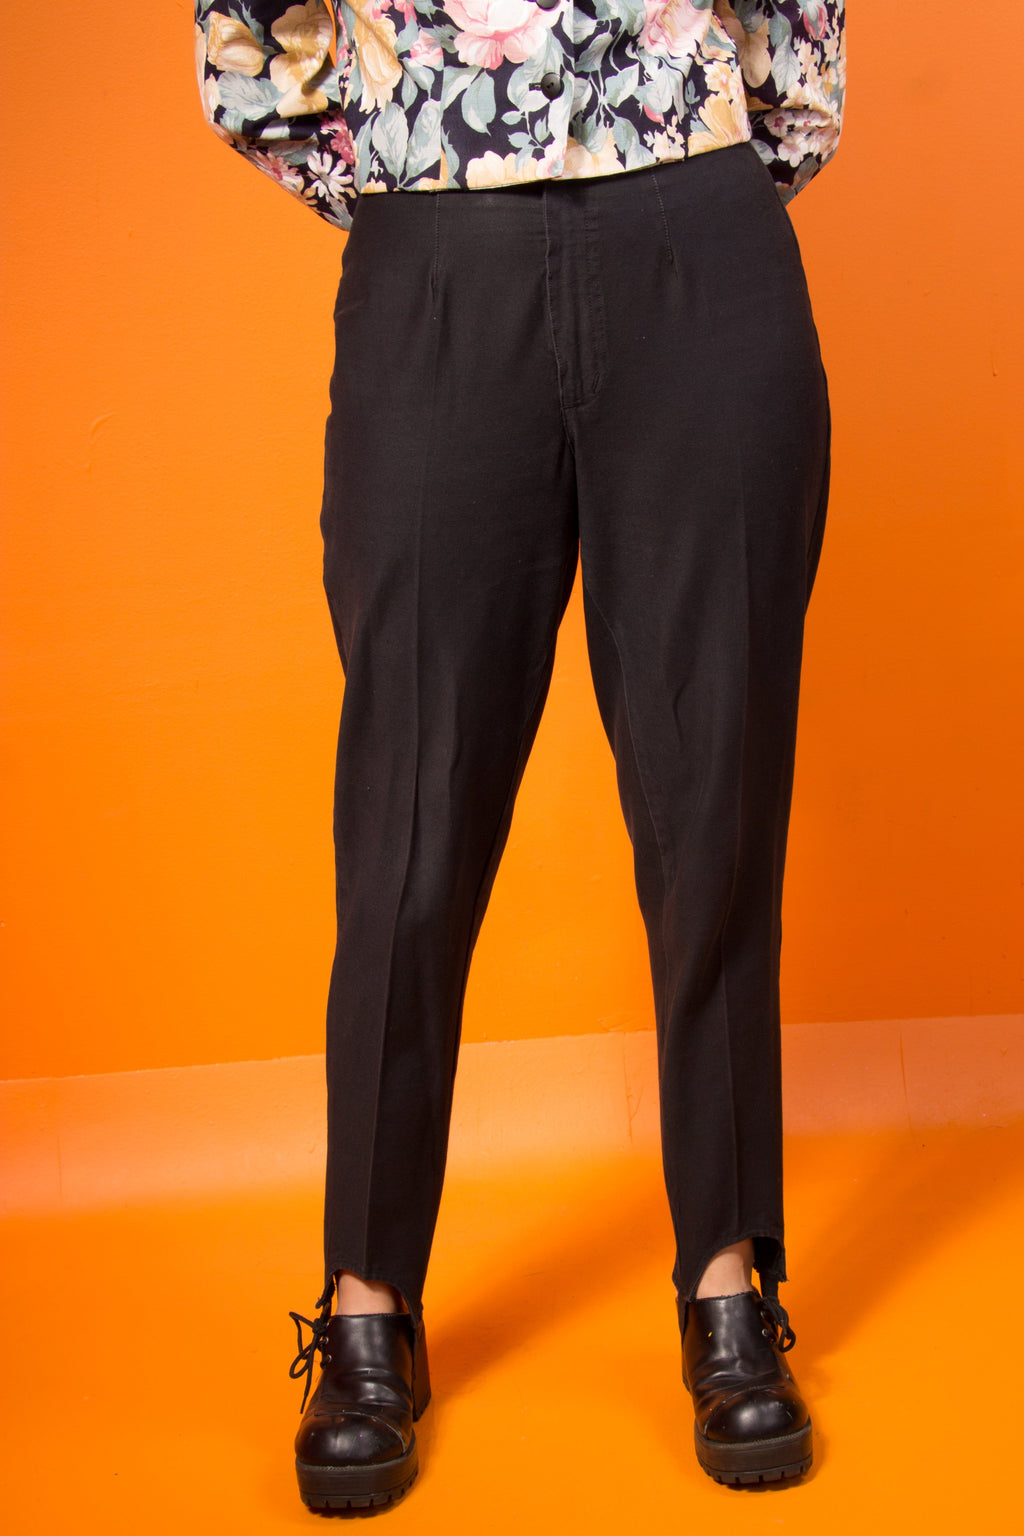 Vintage - Black Stirrup Pants